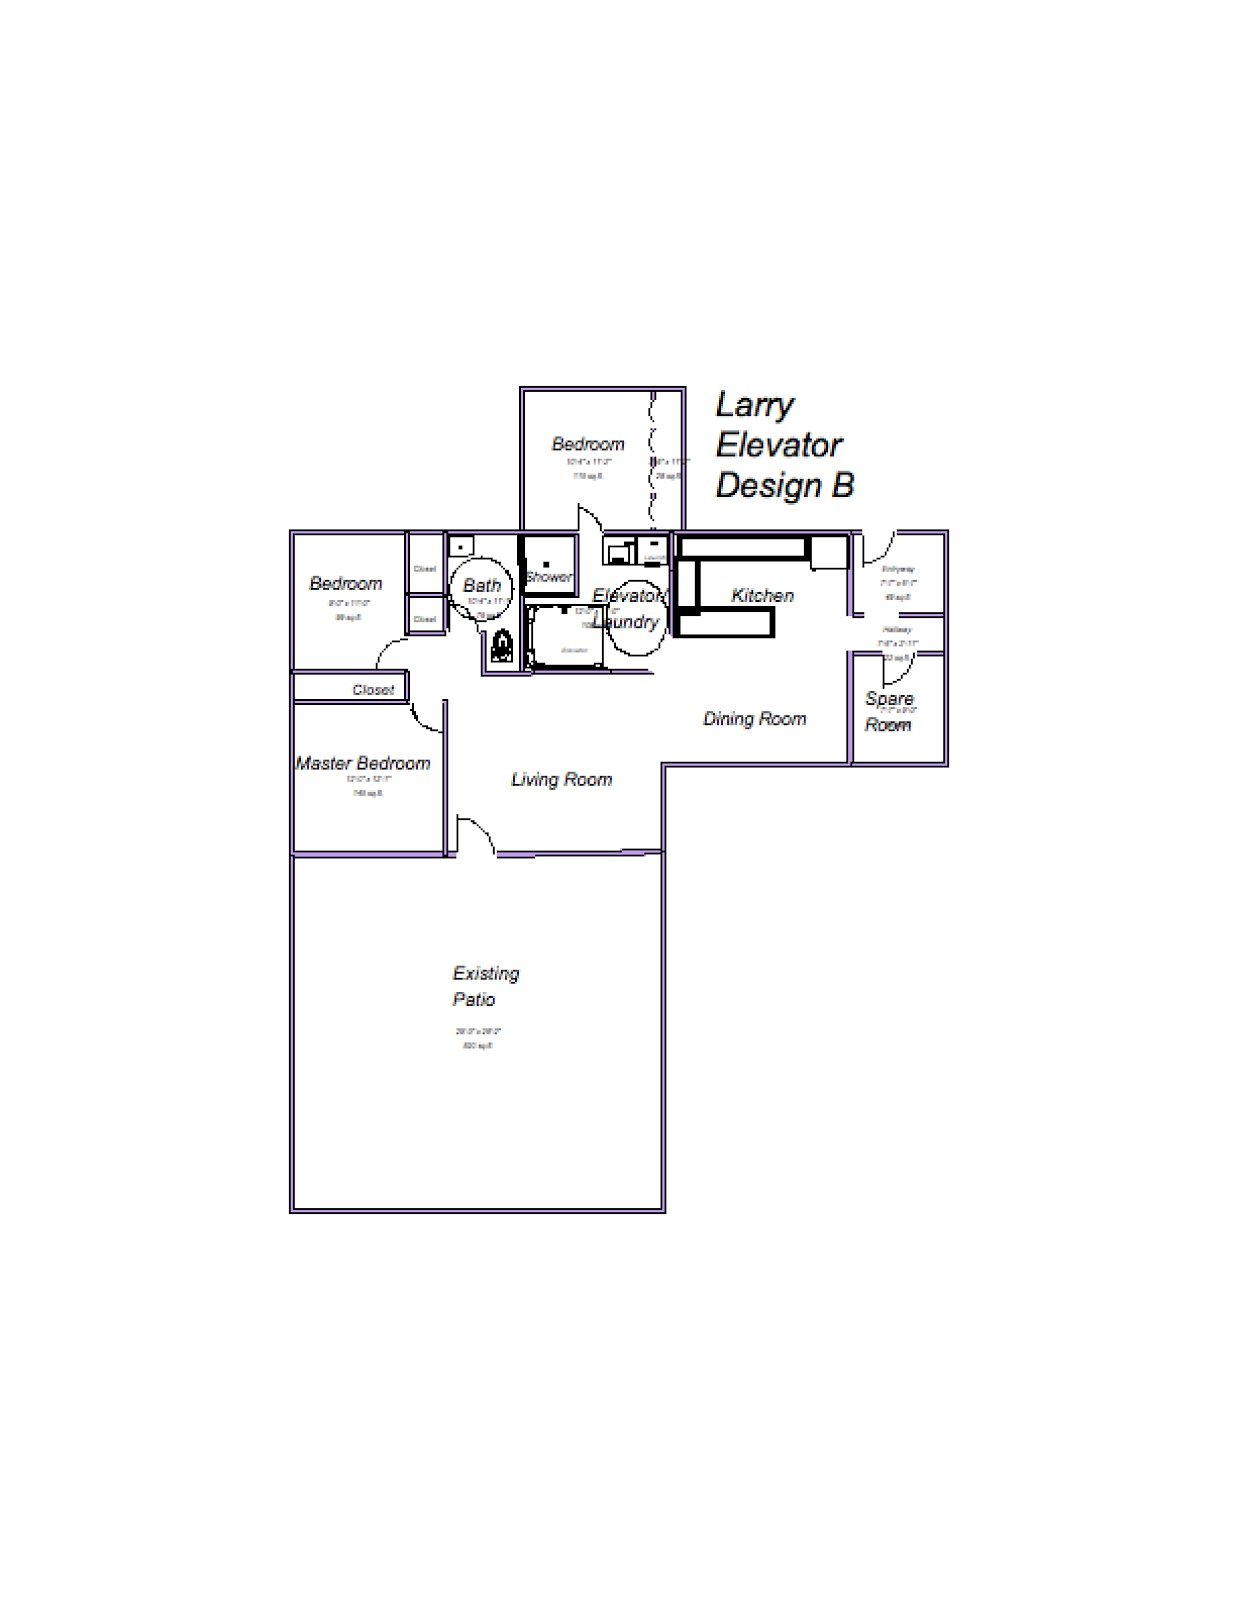 Larry 39 S Design Plans To Make Ranch House Ada Accessible